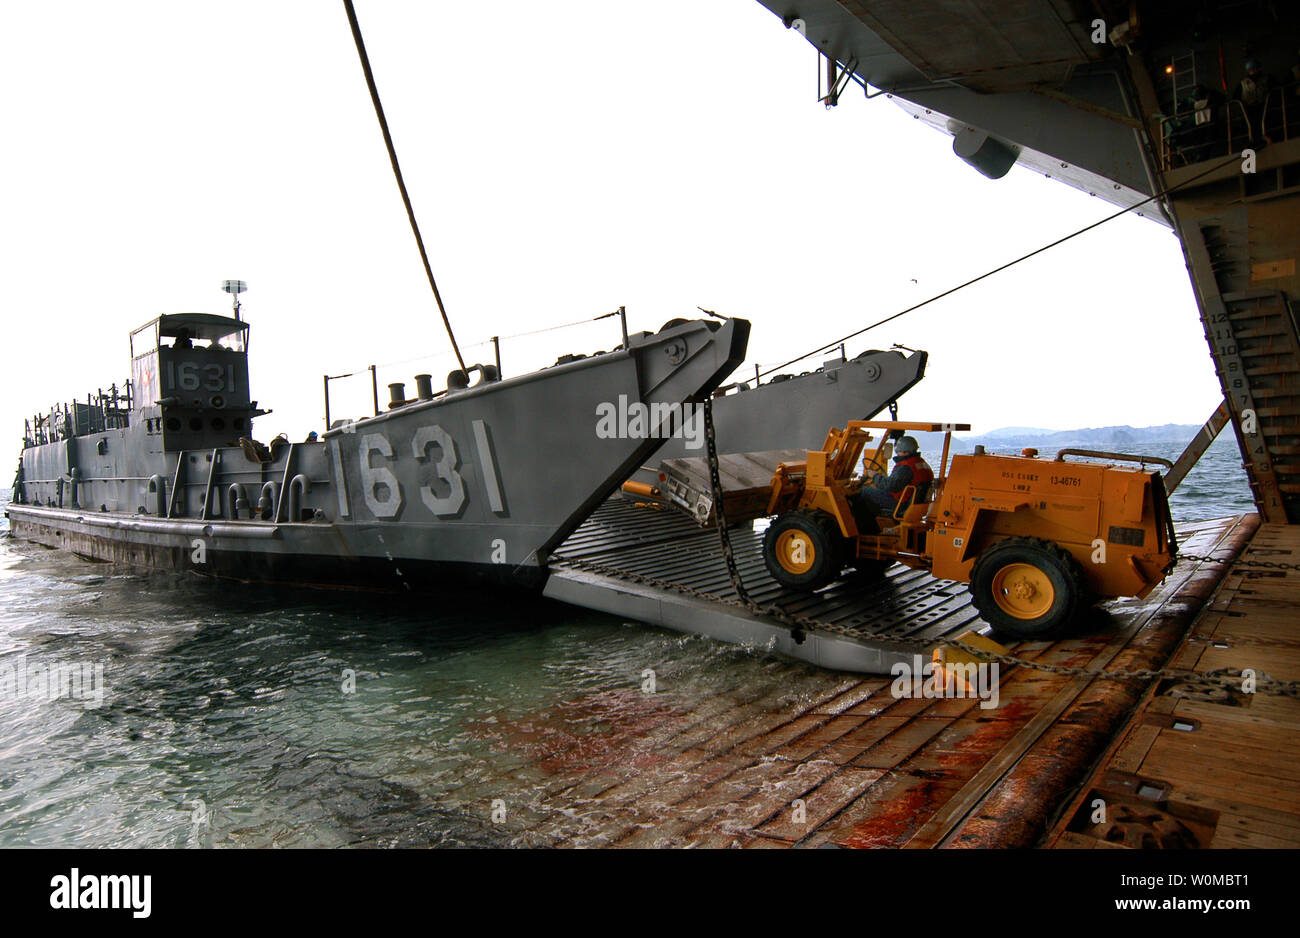 (Jan. 24, 2008) A forklift from the amphibious assault ship USS Essex (LHD 2) unloads supplies from Landing Craft Utility 1631 off the coast of Sasebo, Japan on January 24, 2008.  Essex is the lead ship in the Essex Expeditionary Strike Group and serves as the flagship for Task Force 76. (UPI Photo/Joshua J. Wahl/US Navy) Stock Photo